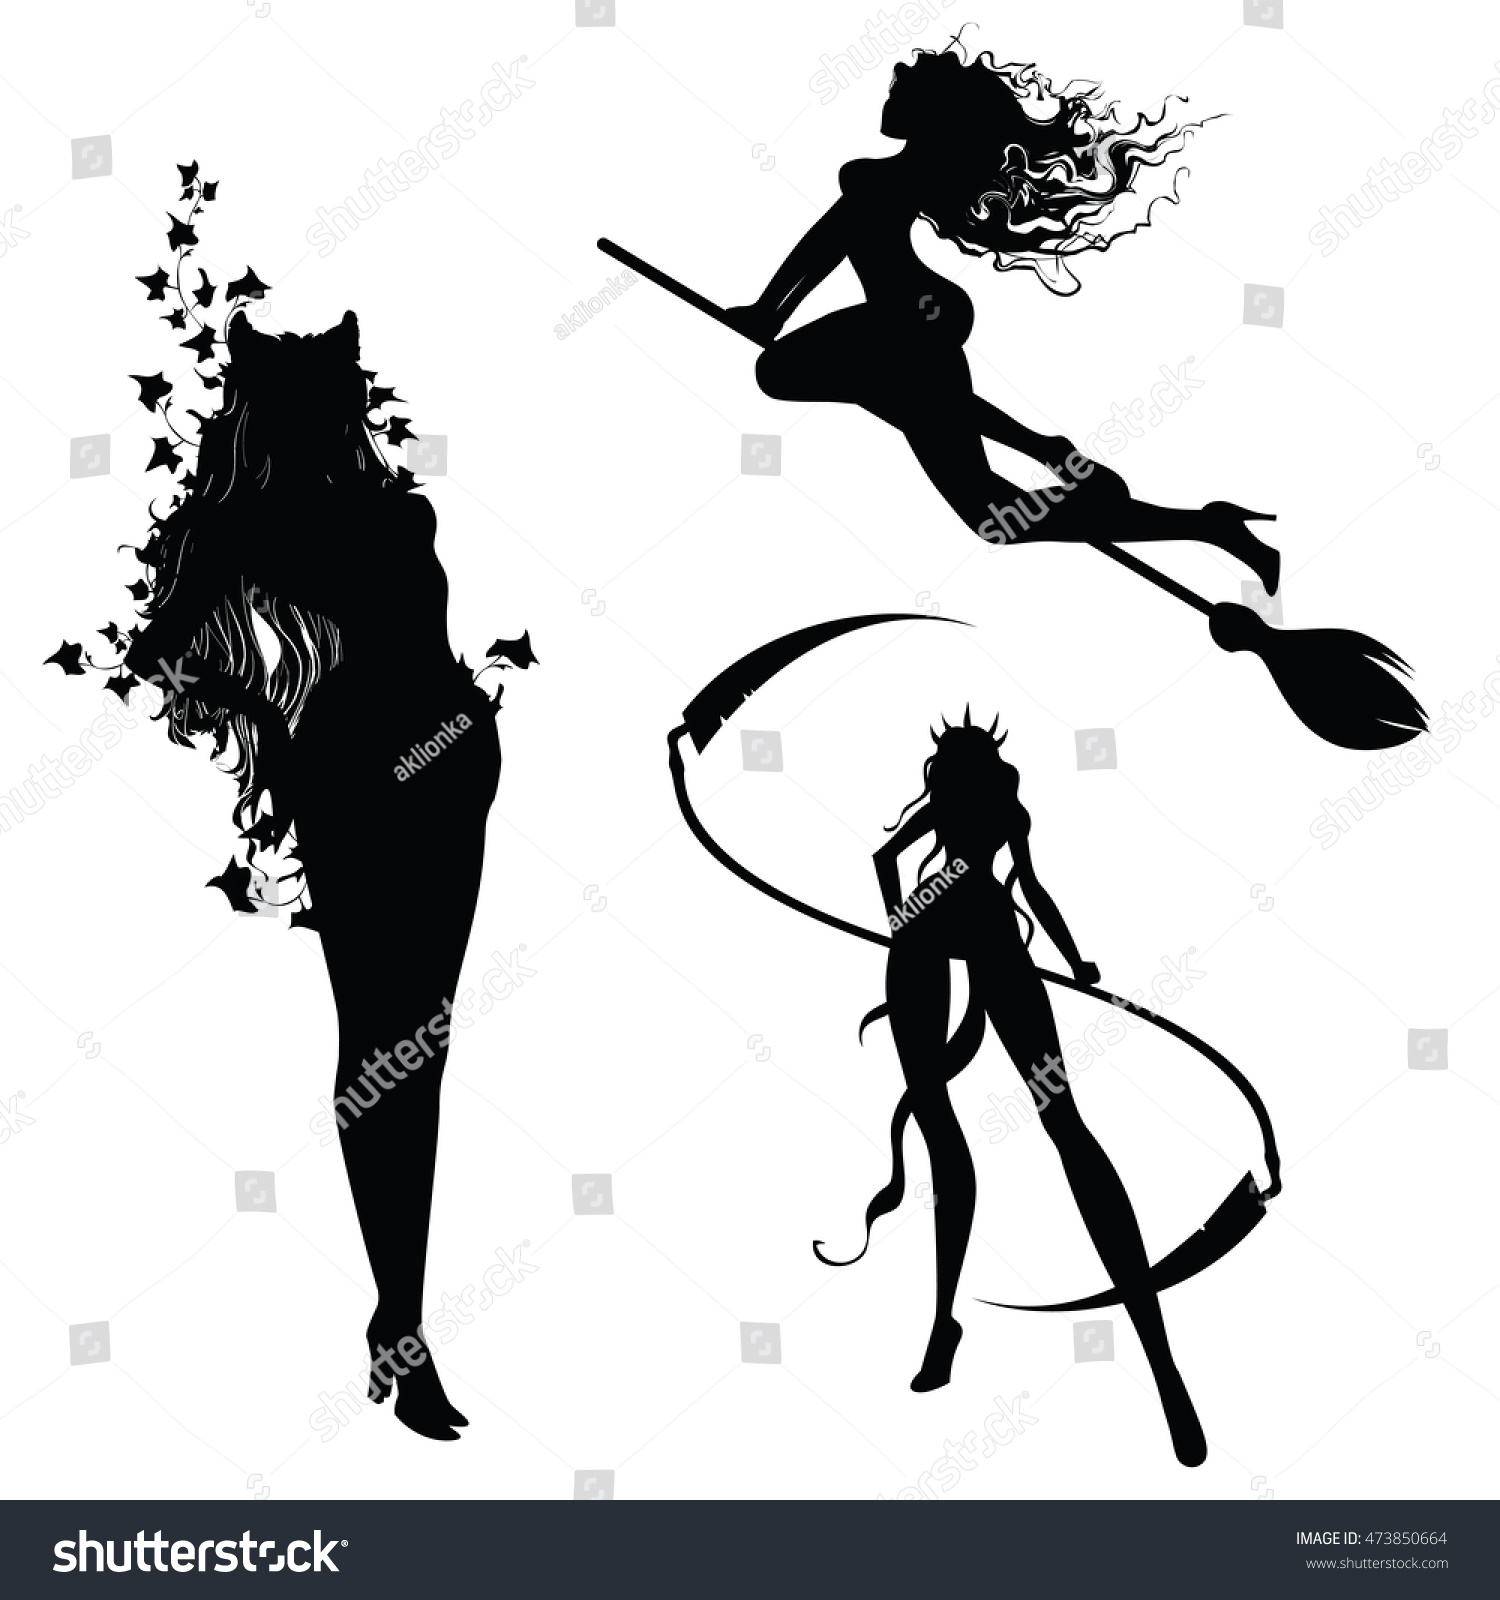 set 3 different silhouettes witches silhouettes stock illustration